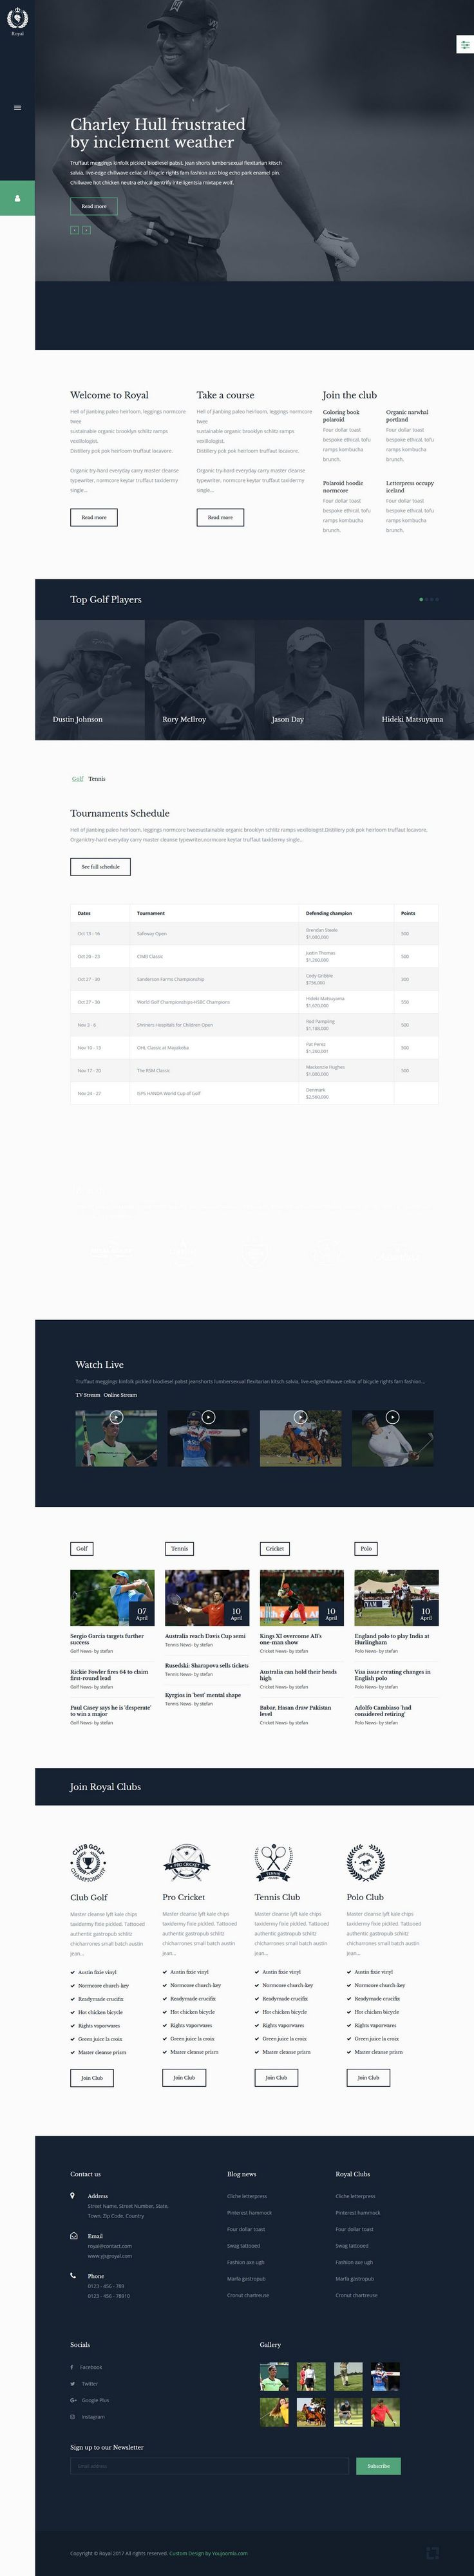 Royal Sports Joomla Template. Royal Sports is a Premium Joomla Themes from You Joomla Templates. This template is optimized for online gaming sports, business, events or portfolio presentation websites. It is built using Yj Simple Grid (Yjsg) Joomla Template Framework.   #Joomla Premium Themes #Joomla Sports Templates #Joomla Templates 2017 #Joomla Templates For Games #Joomla Themes 2017 #Premium Joomla Themes #Sports Joomla Templates #Youjoomla Templates #Youjoomla Themes